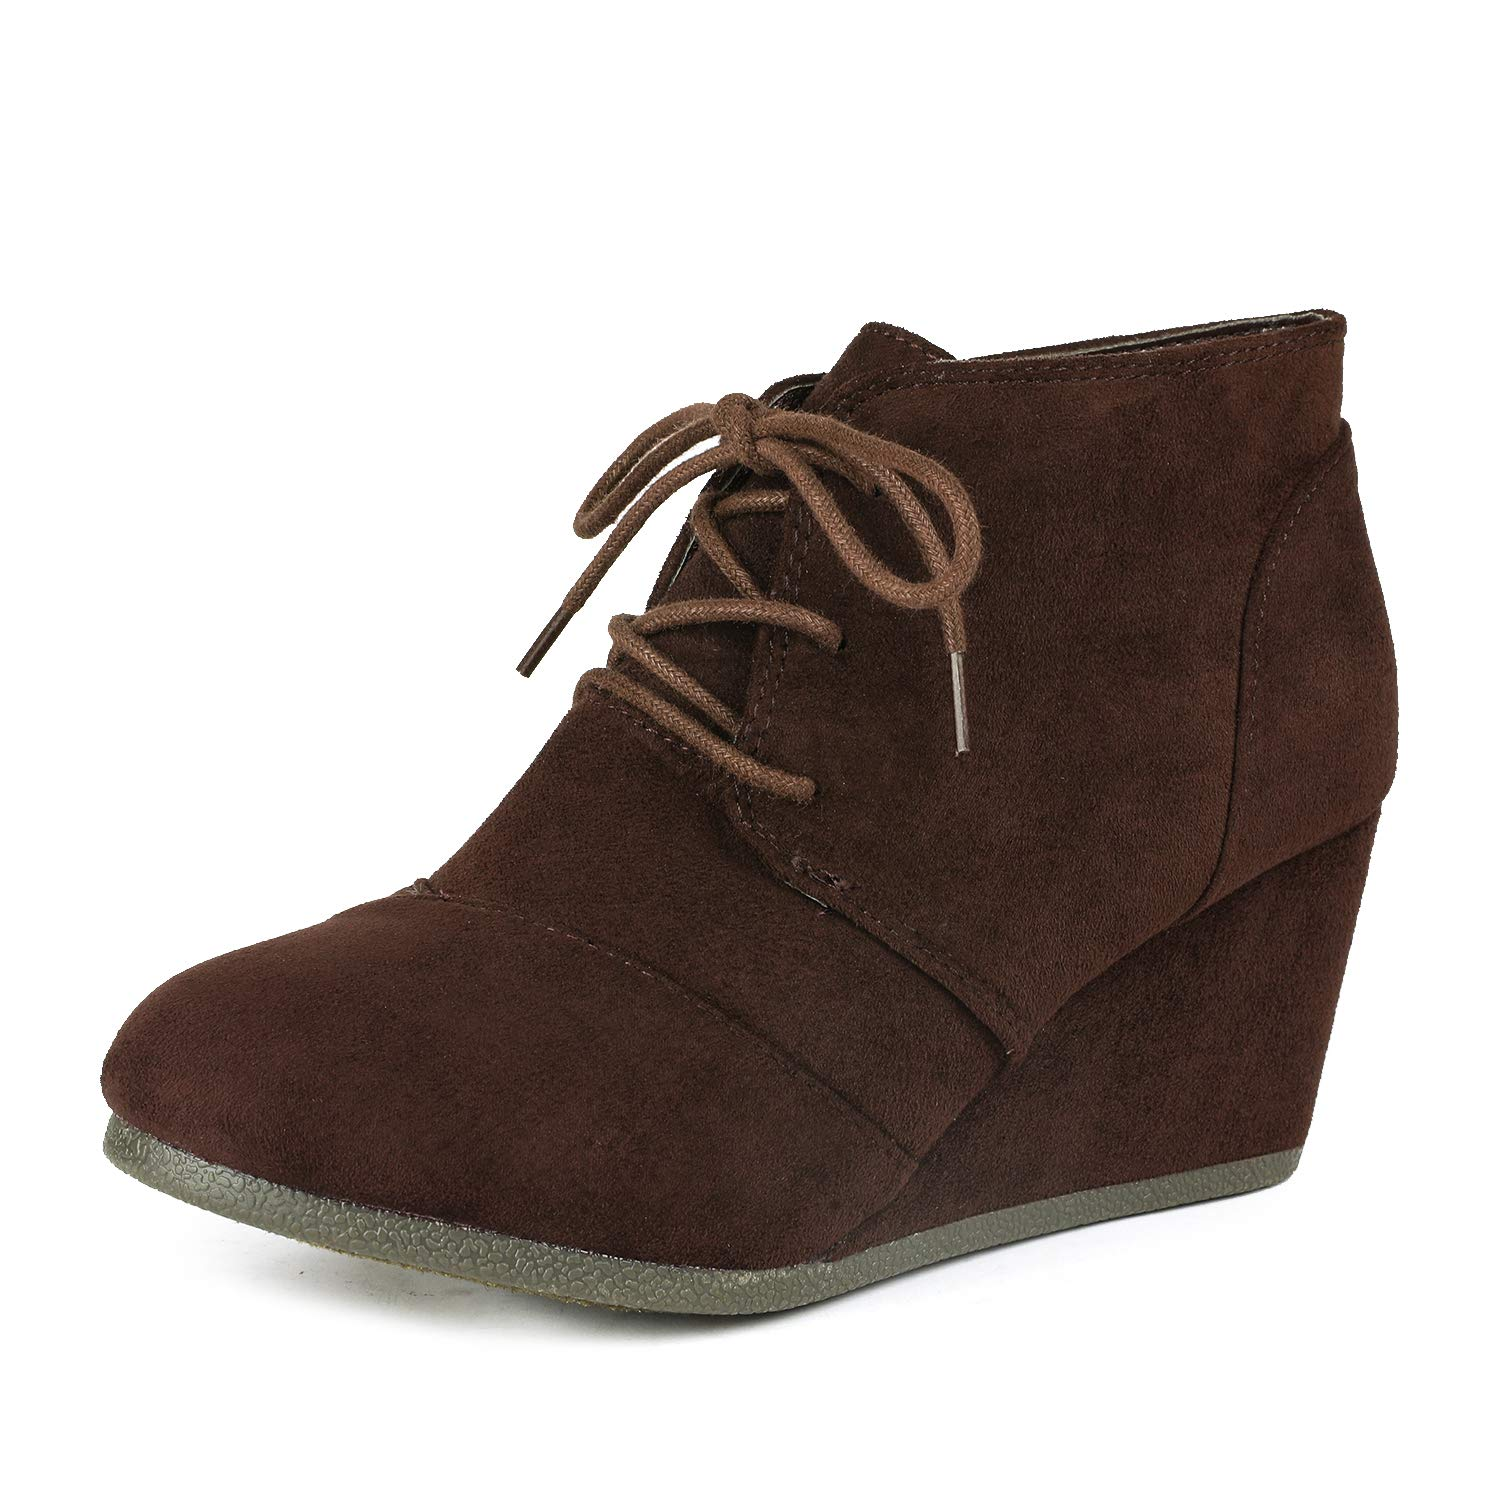 DREAM PAIRS Tomson Womens Casual Fashion Outdoor Lace Up Low Wedge Heel Booties Shoes